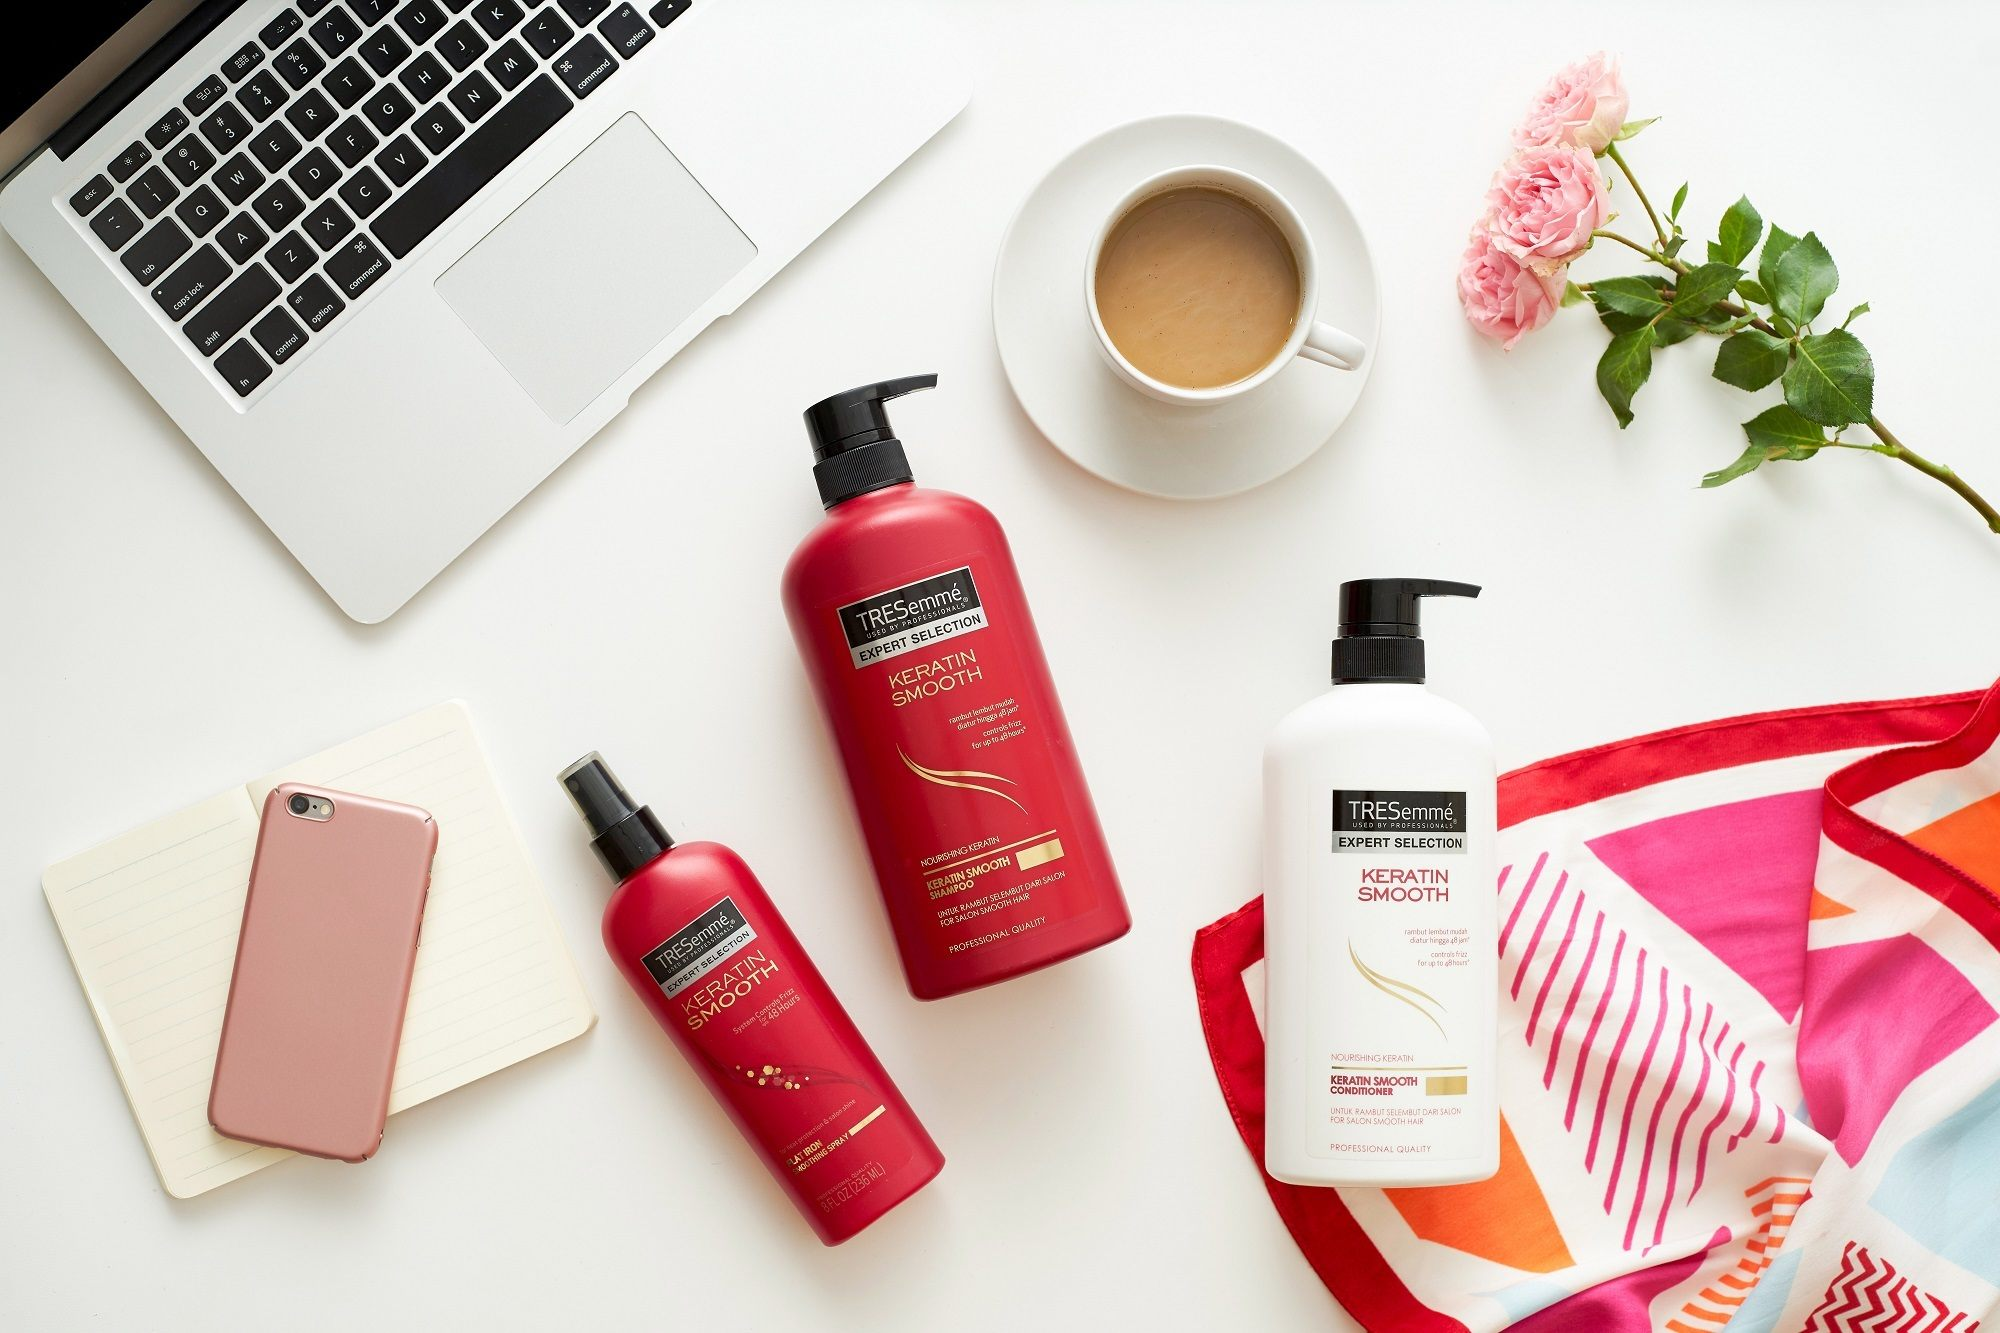 How to get beautiful hair: Flat lay of TRESemme products and office props